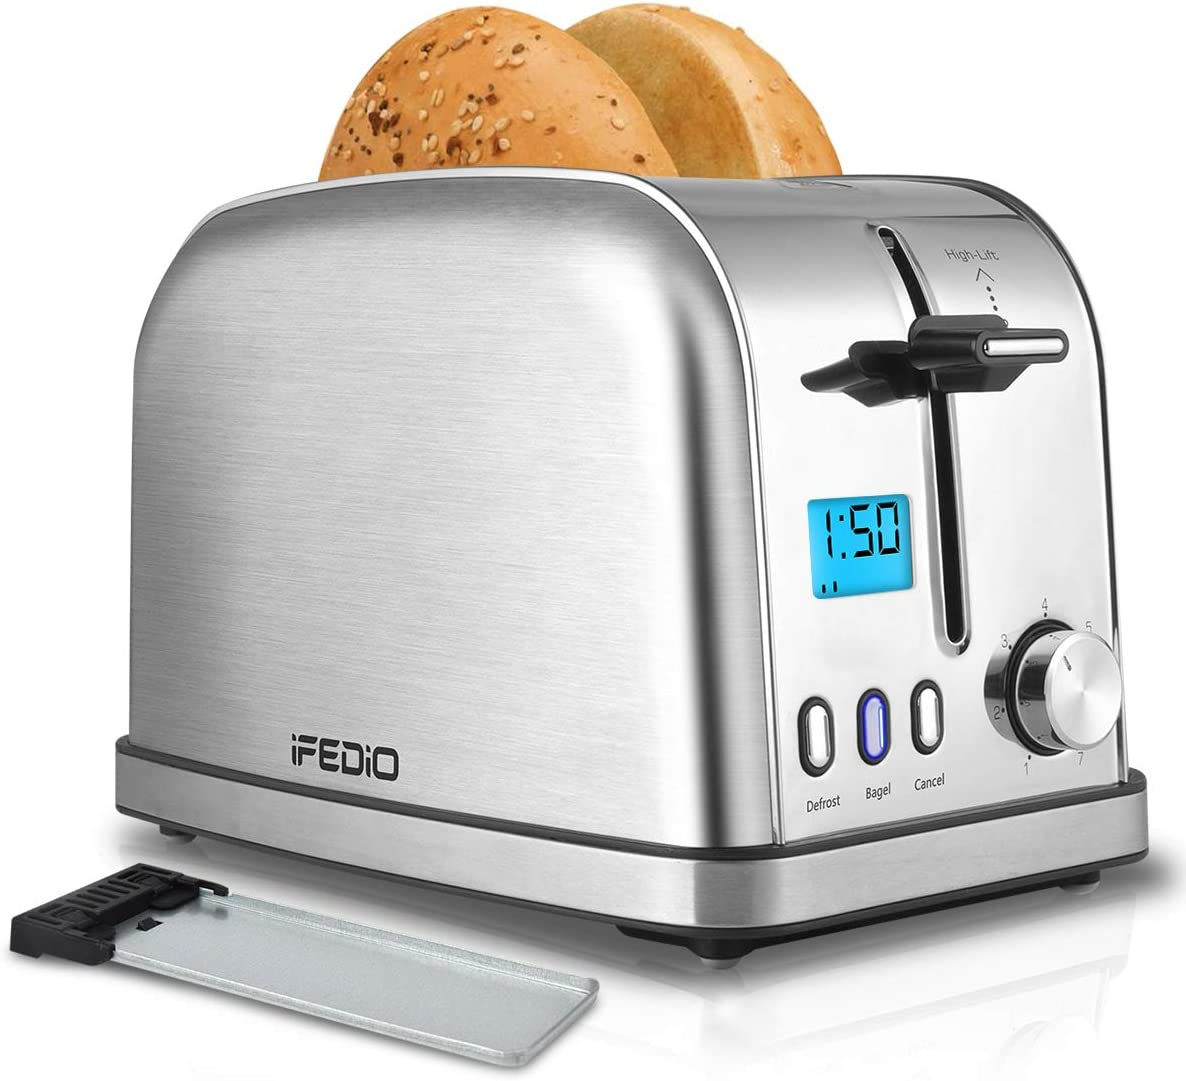 Toaster 2 Slice Toasters Best Rated Prime Toaster LCD Timer Display Compact Stainless Steel Toaster with 7 Bread Shade Settings, Bagel Defrost Cancel Function, Extra Wide Slots, Removable Crumb Tray 900W, Silver